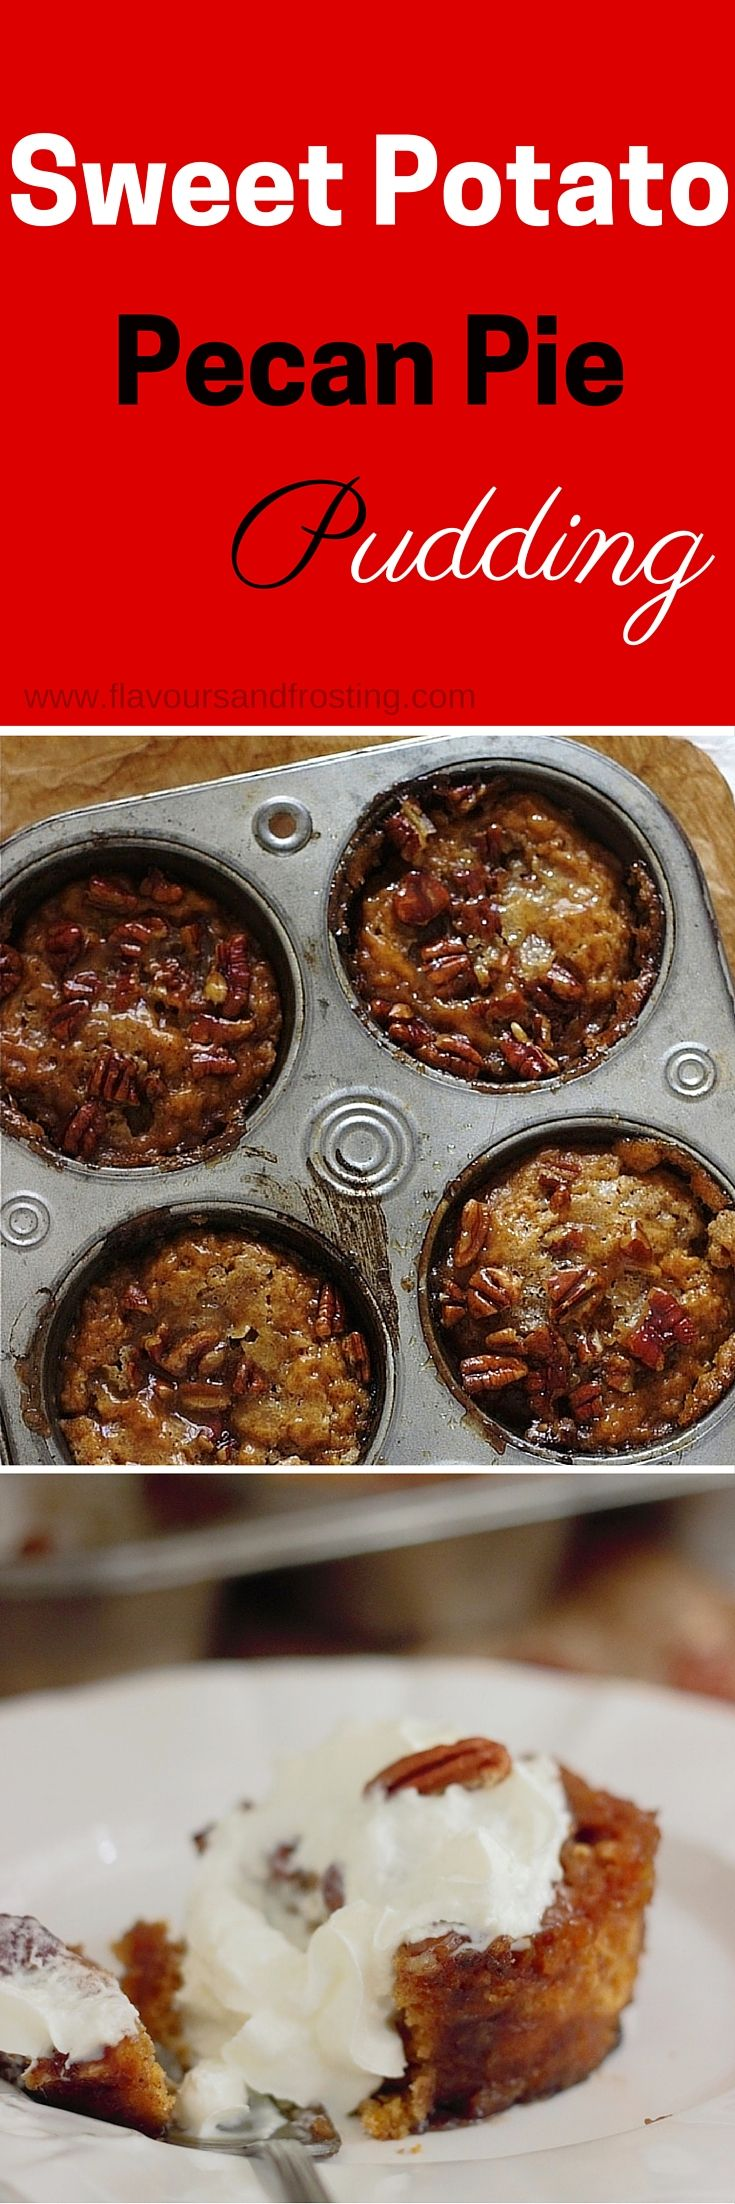 Mini Sweet Potato Pecan Pie Pudding made of sweet potato pudding with a brown sugar and pecan nut topping that becomes a lava of ooey gooye caramely goodness!